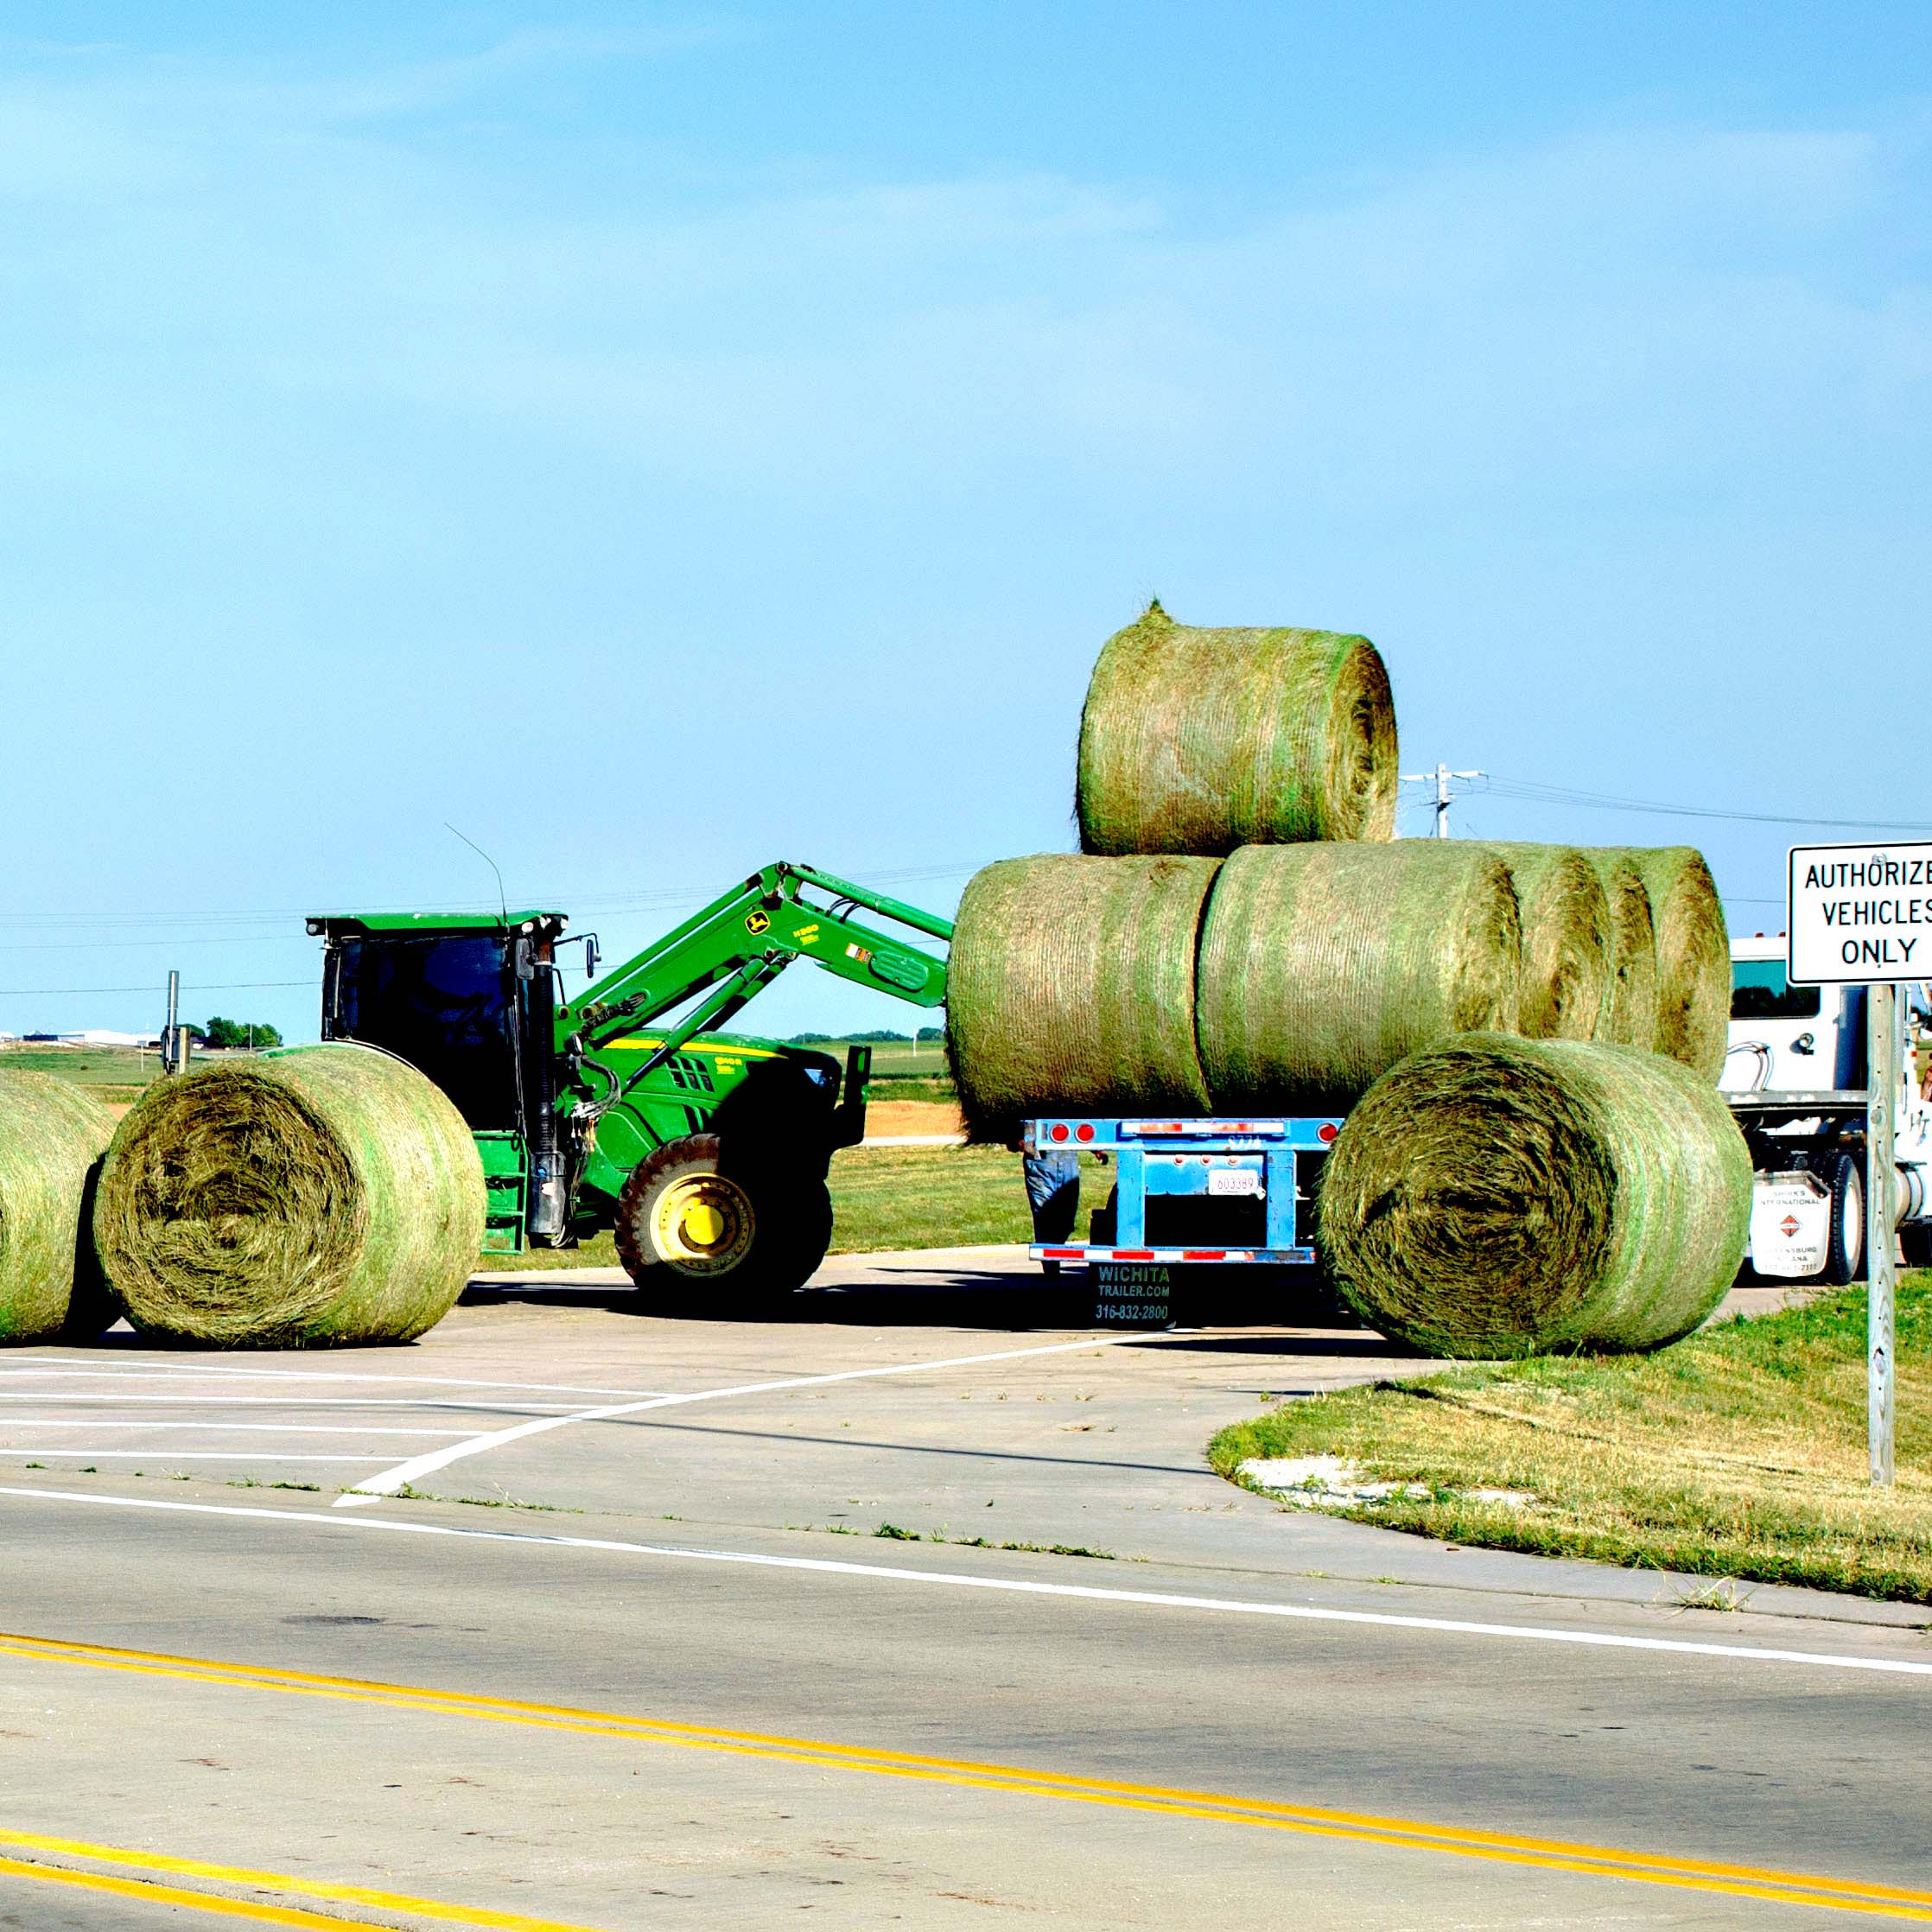 "Babette Jones of Wichita serves up her ""Made With Love"" chili at the eighth annual Chili Cook-off at Marion County Park and Lake. Park and lake superintendent Steve Hudson said nearly $2,000 was raised in the cookoff this year, and 335 tasting kits were purchased, compared to 250 last year. The winning chili was dubbed ""Hungrazilican Chili,"" for its Hungarian, Brazilian, and American components. The chili chefs were Bob McCurdy, Marcy Davis, Katherine Heidel, and Deborah Paixcao."